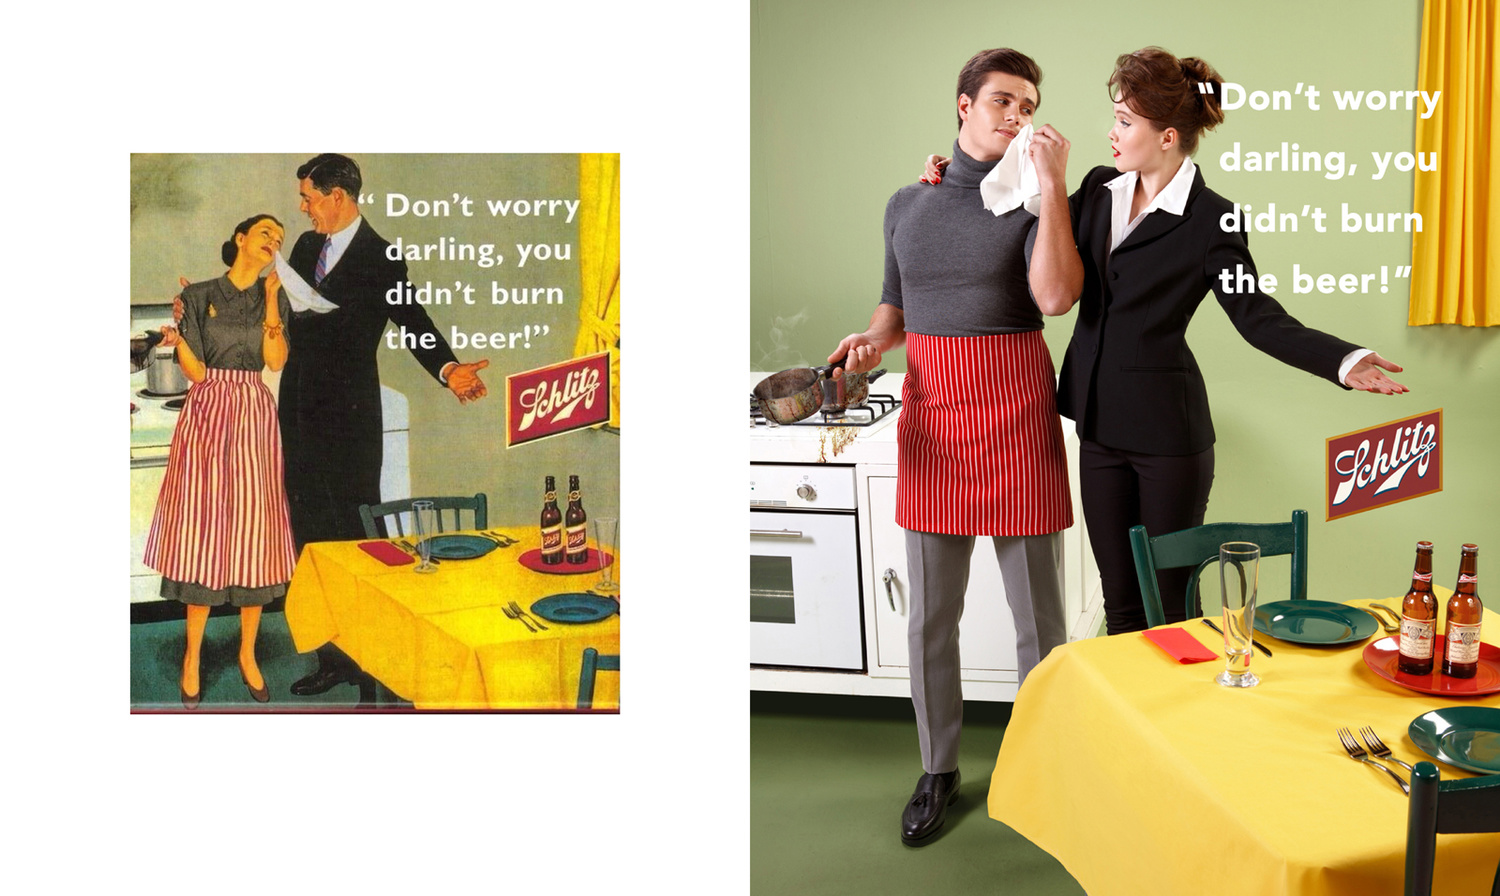 Reversed roles on a sexist vintage advert